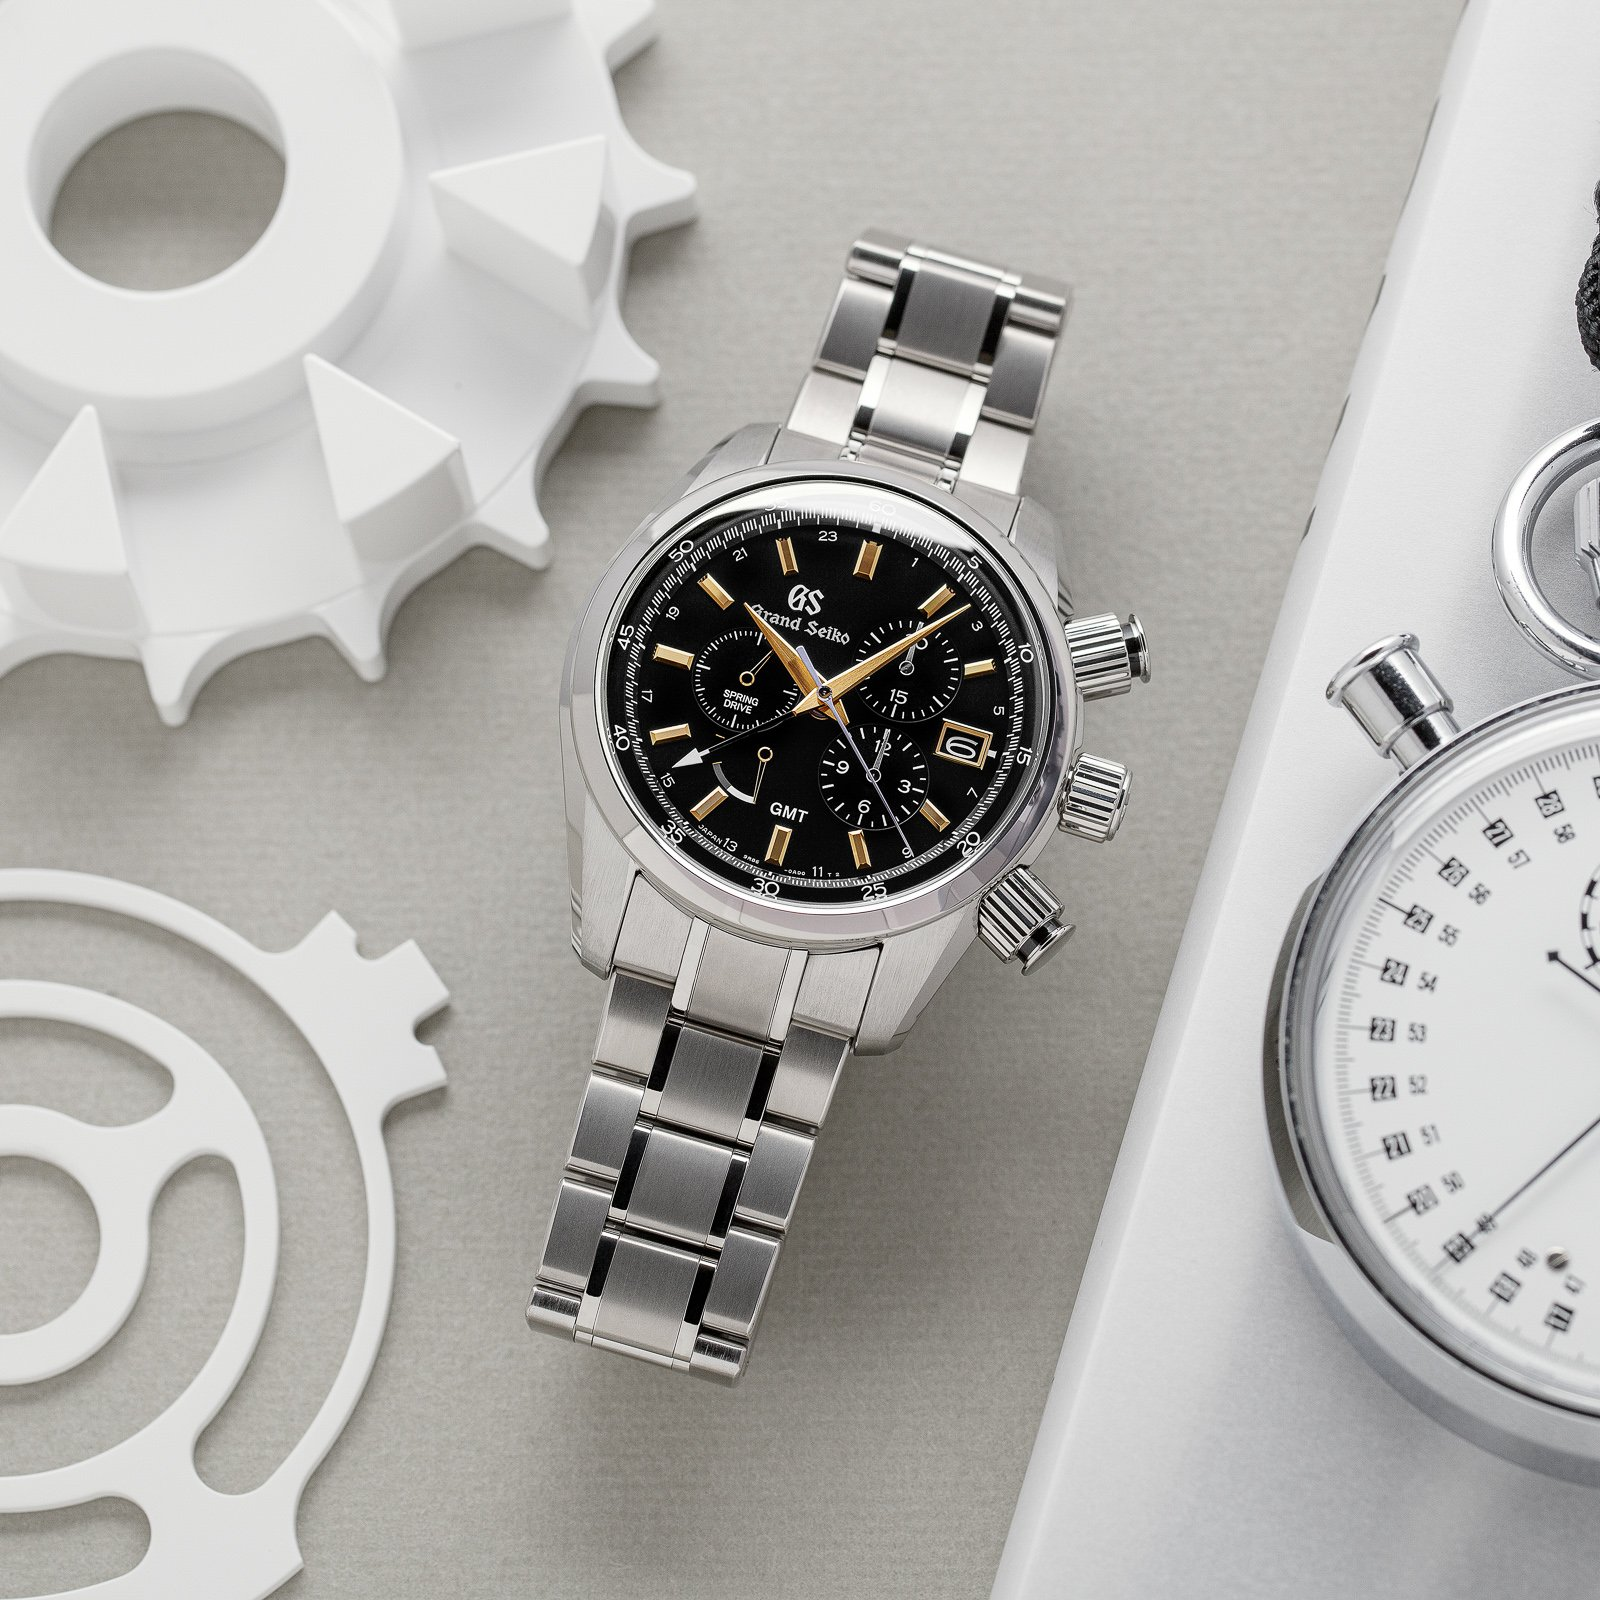 Grand Seiko SBGC205 Chronograph - black dial wristwatch with gold-tone accents.